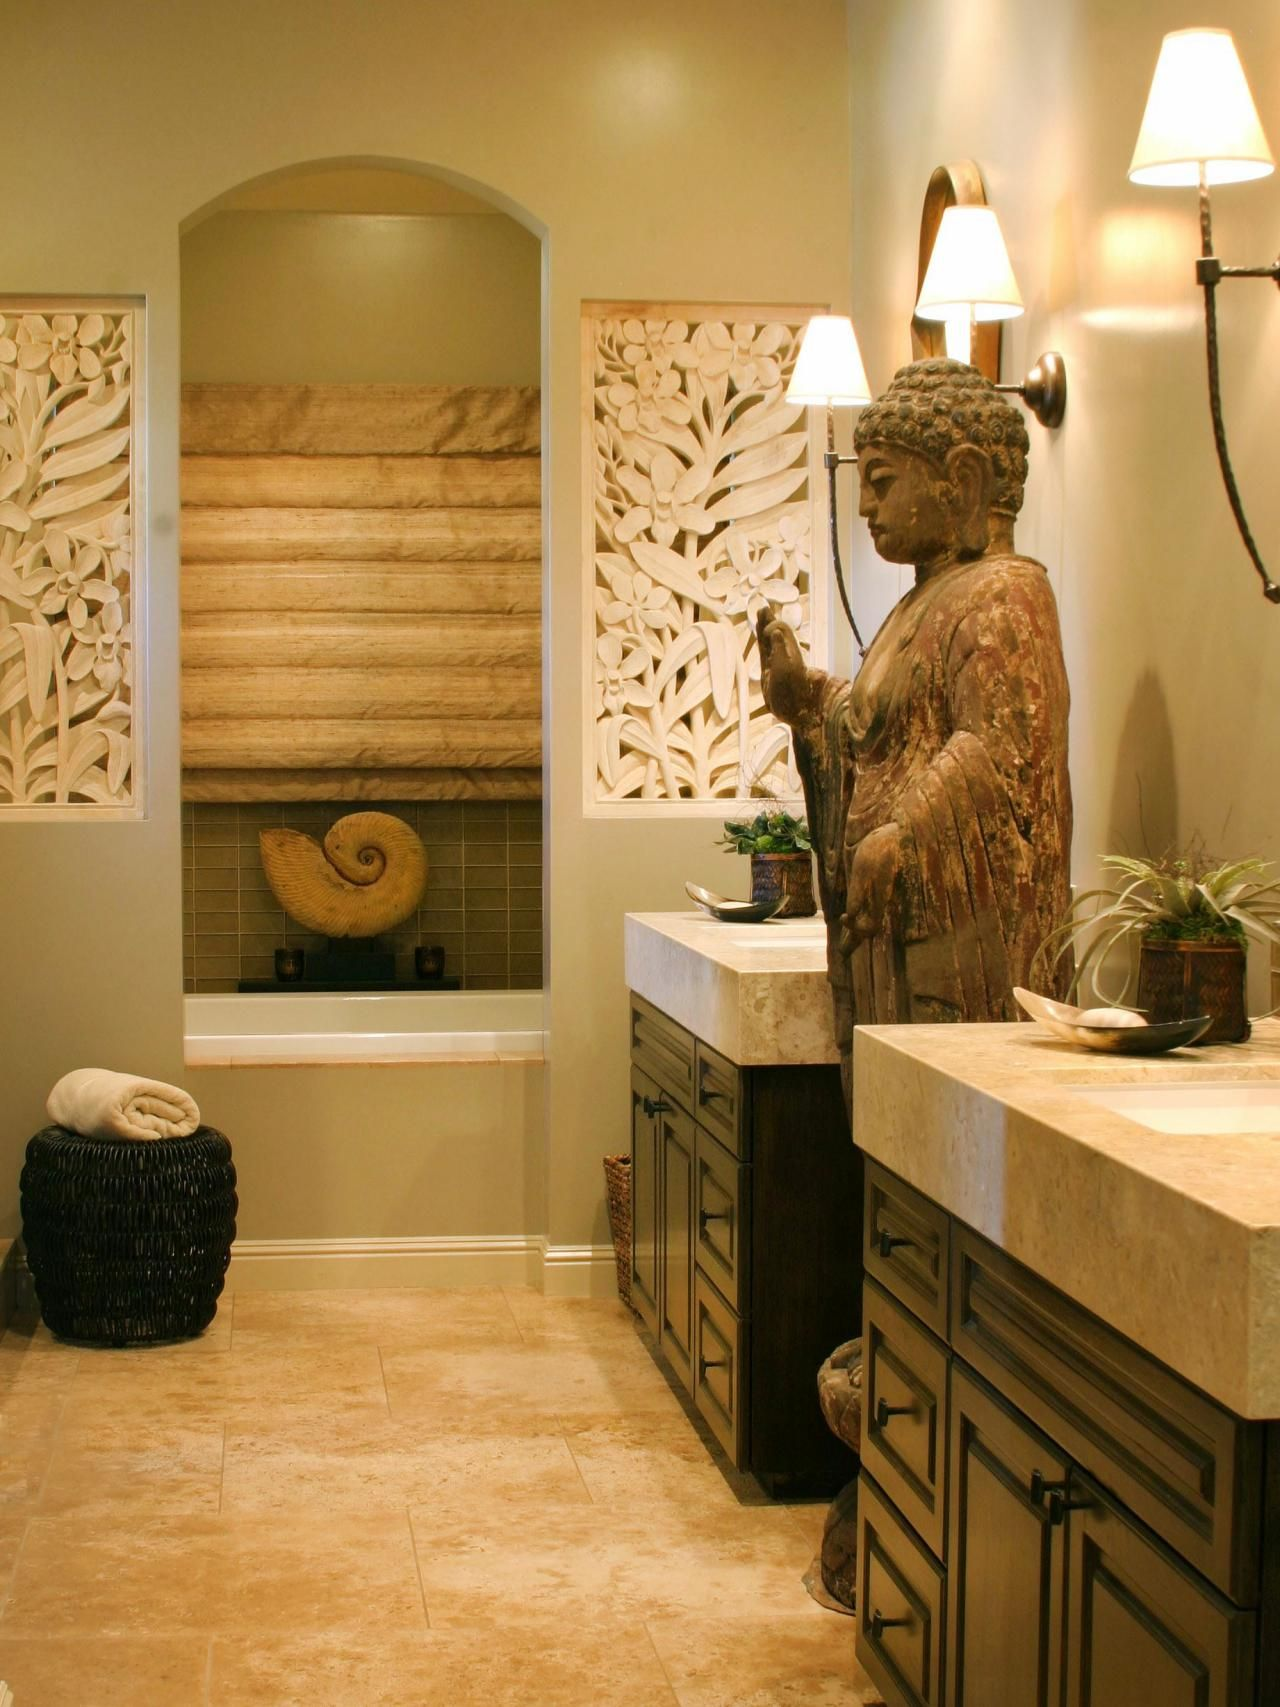 Asian Design Ideas Interior Design Styles And Color Schemes For